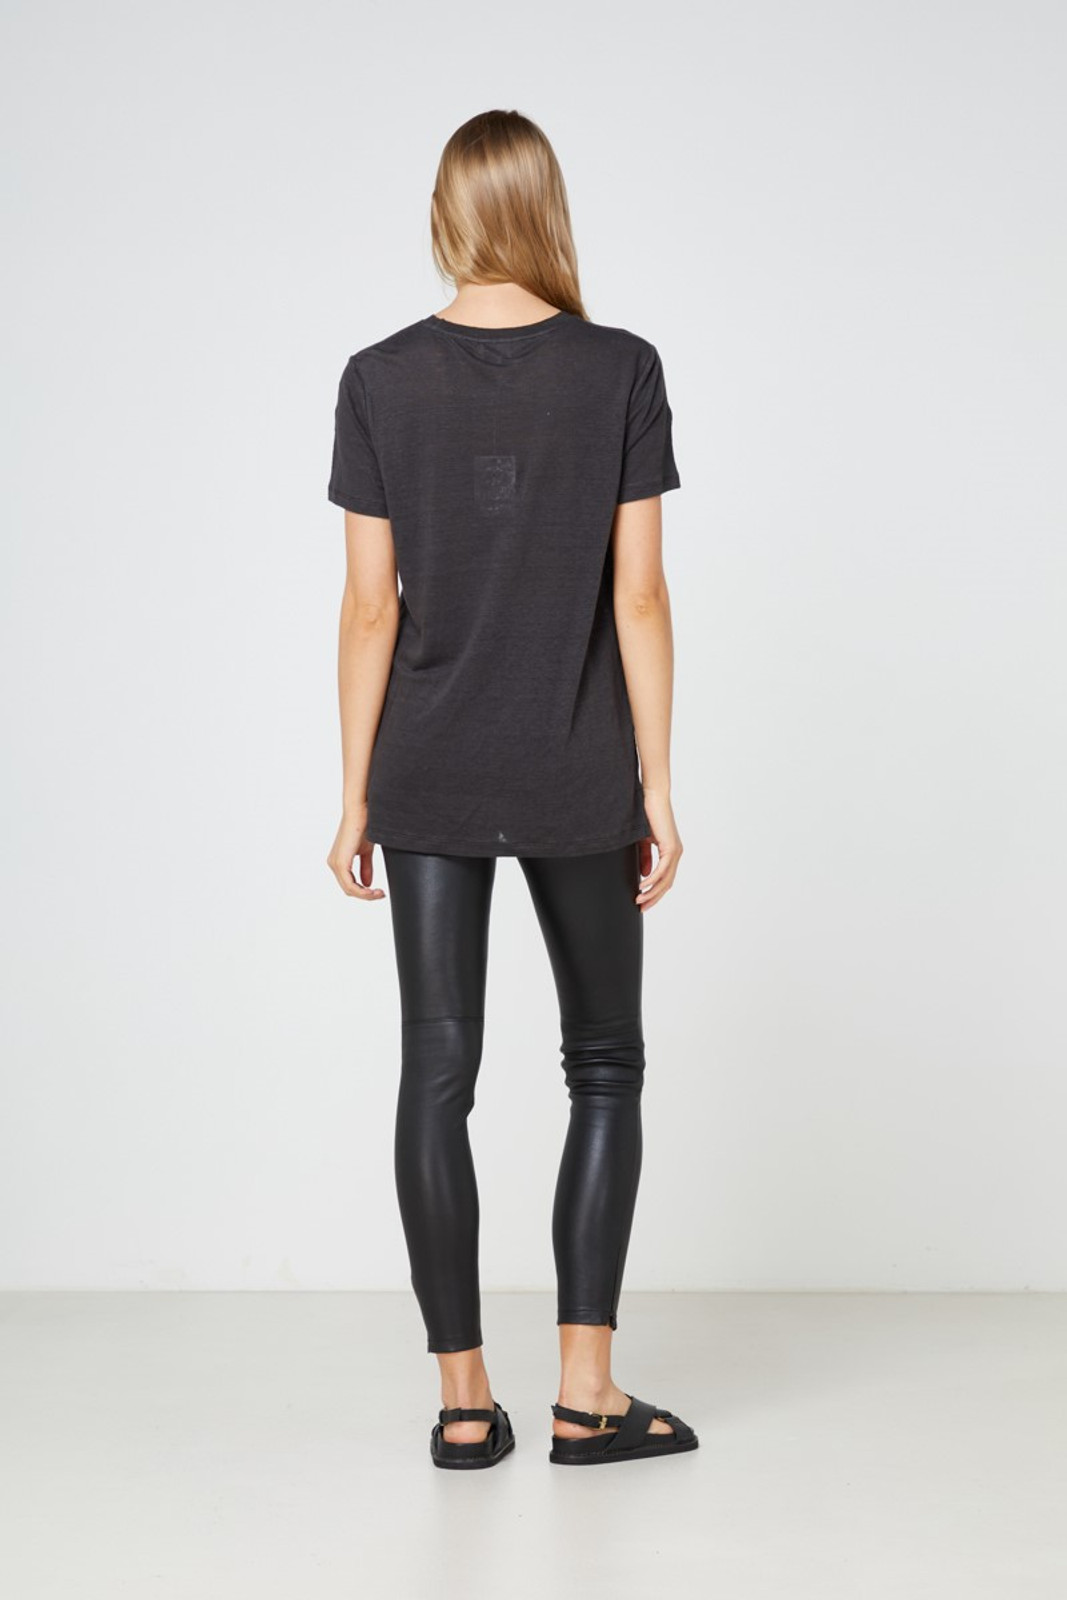 Elka Collective EC Linen Crew Neck Tee Black  5